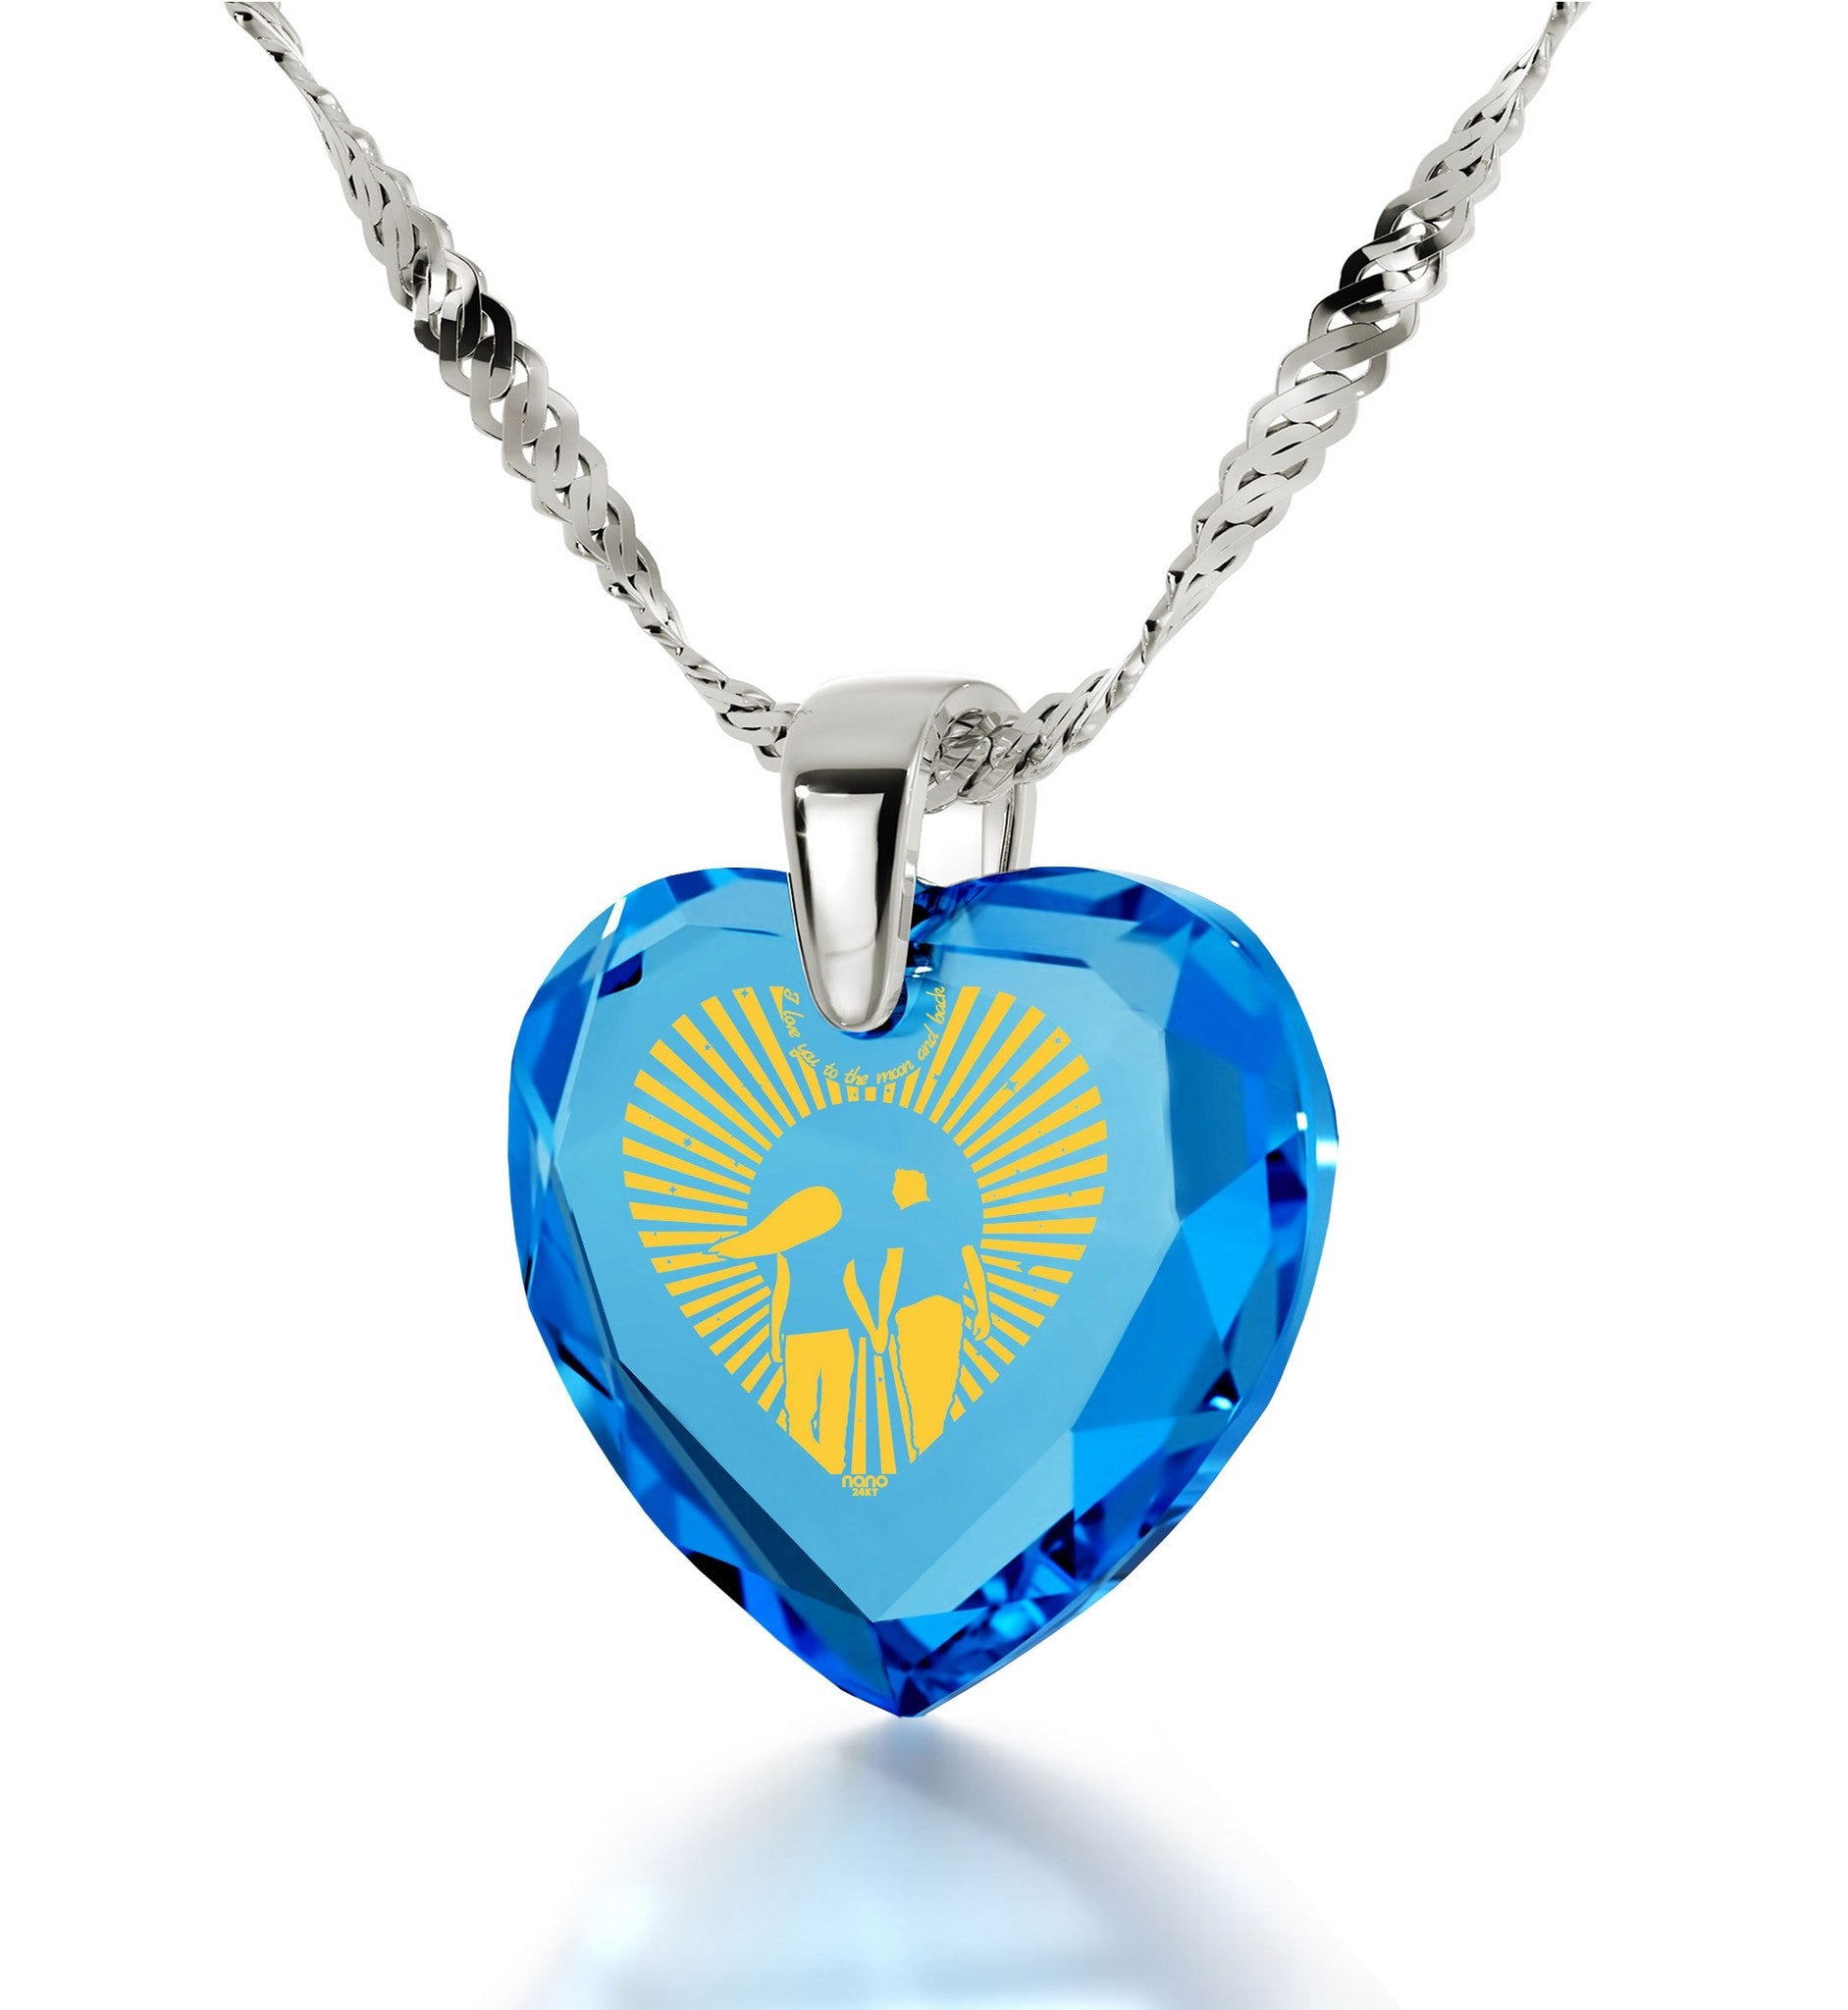 """Cute Necklaces for Her, 24k Engraved Pendant, Best Girlfriend Gifts, Nano Jewelry"""